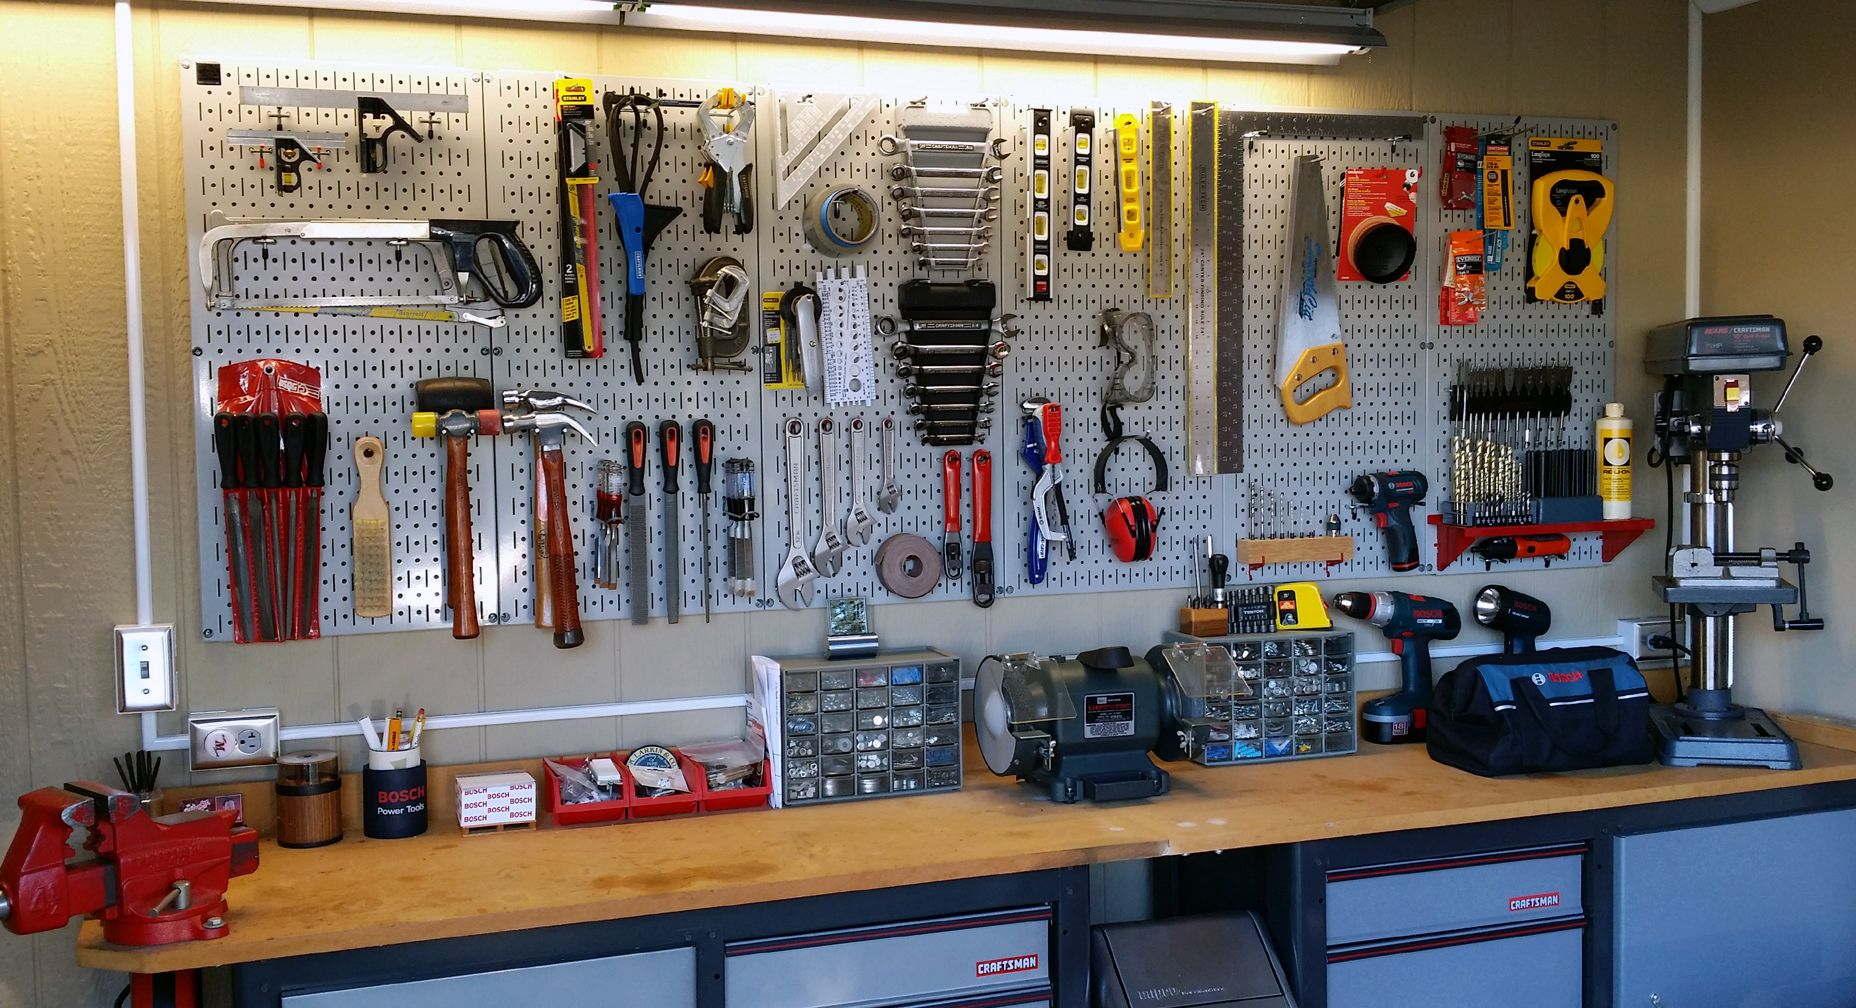 Gray Metal Pegboard Pack Two 32in X 16in Pegboard Tool Boards Pegboard Storage Metal Pegboard Garage Work Bench